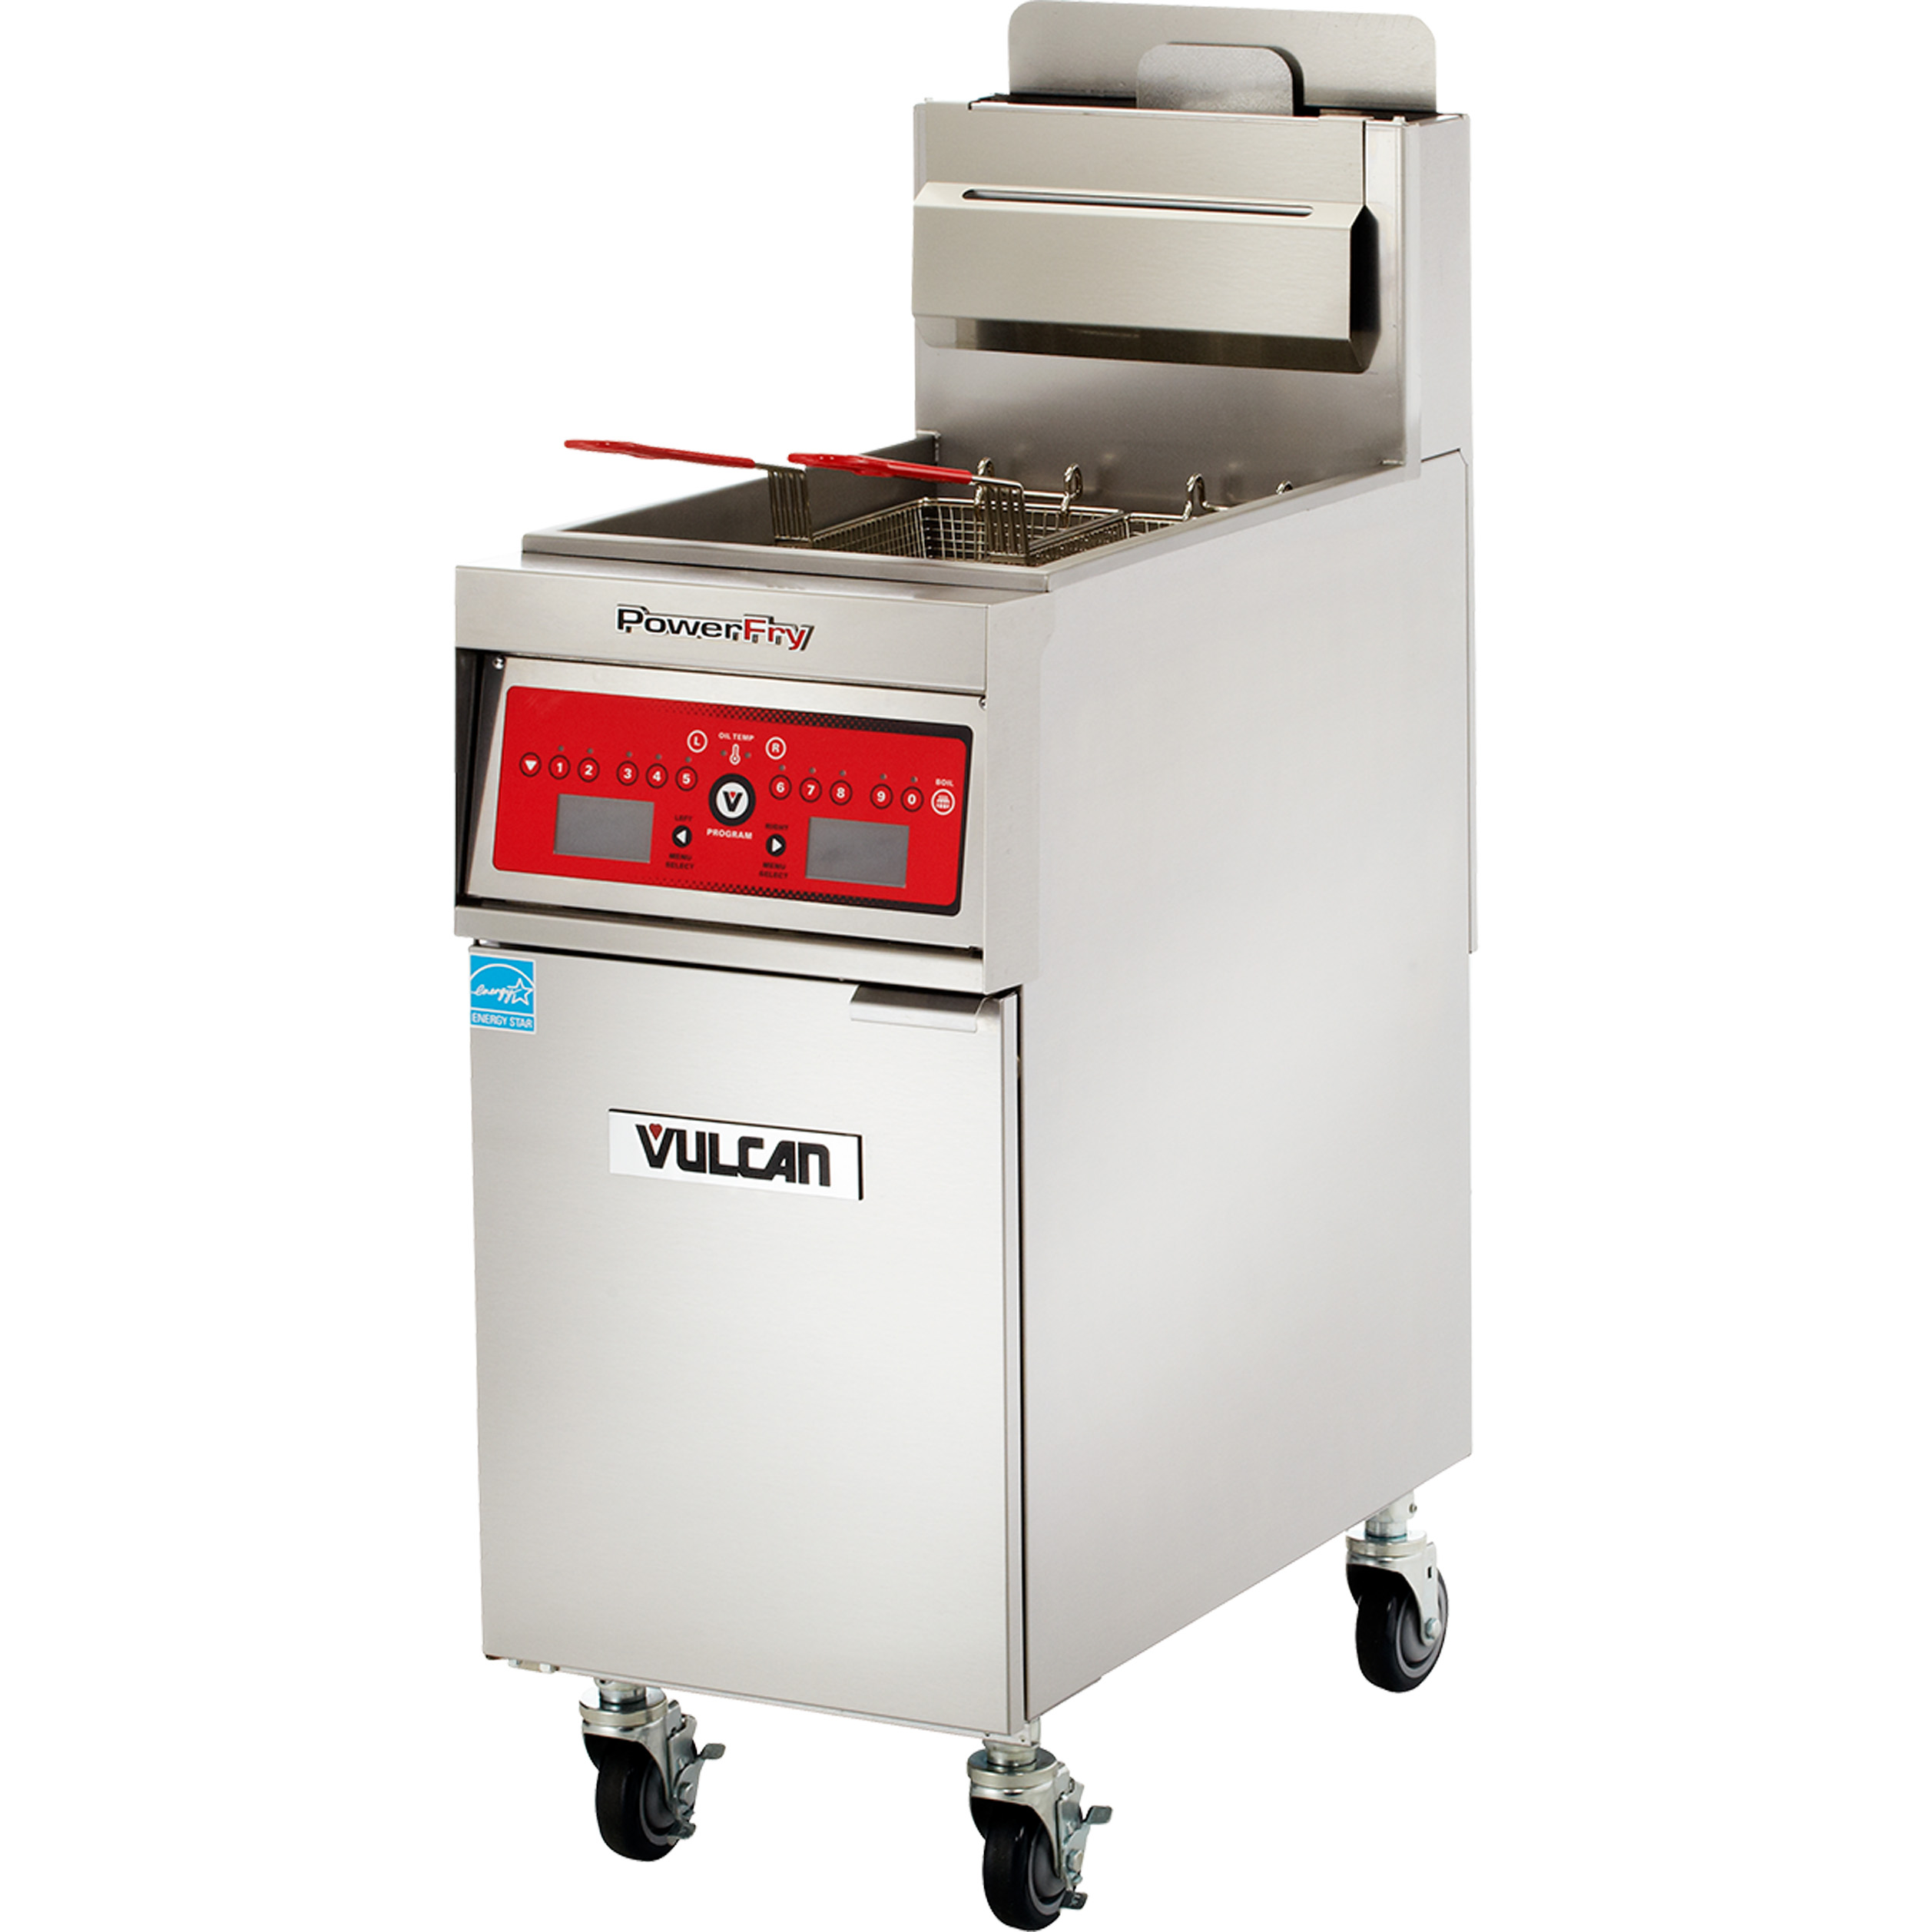 Vulcan 1VK45CF fryer, gas, floor model, full pot